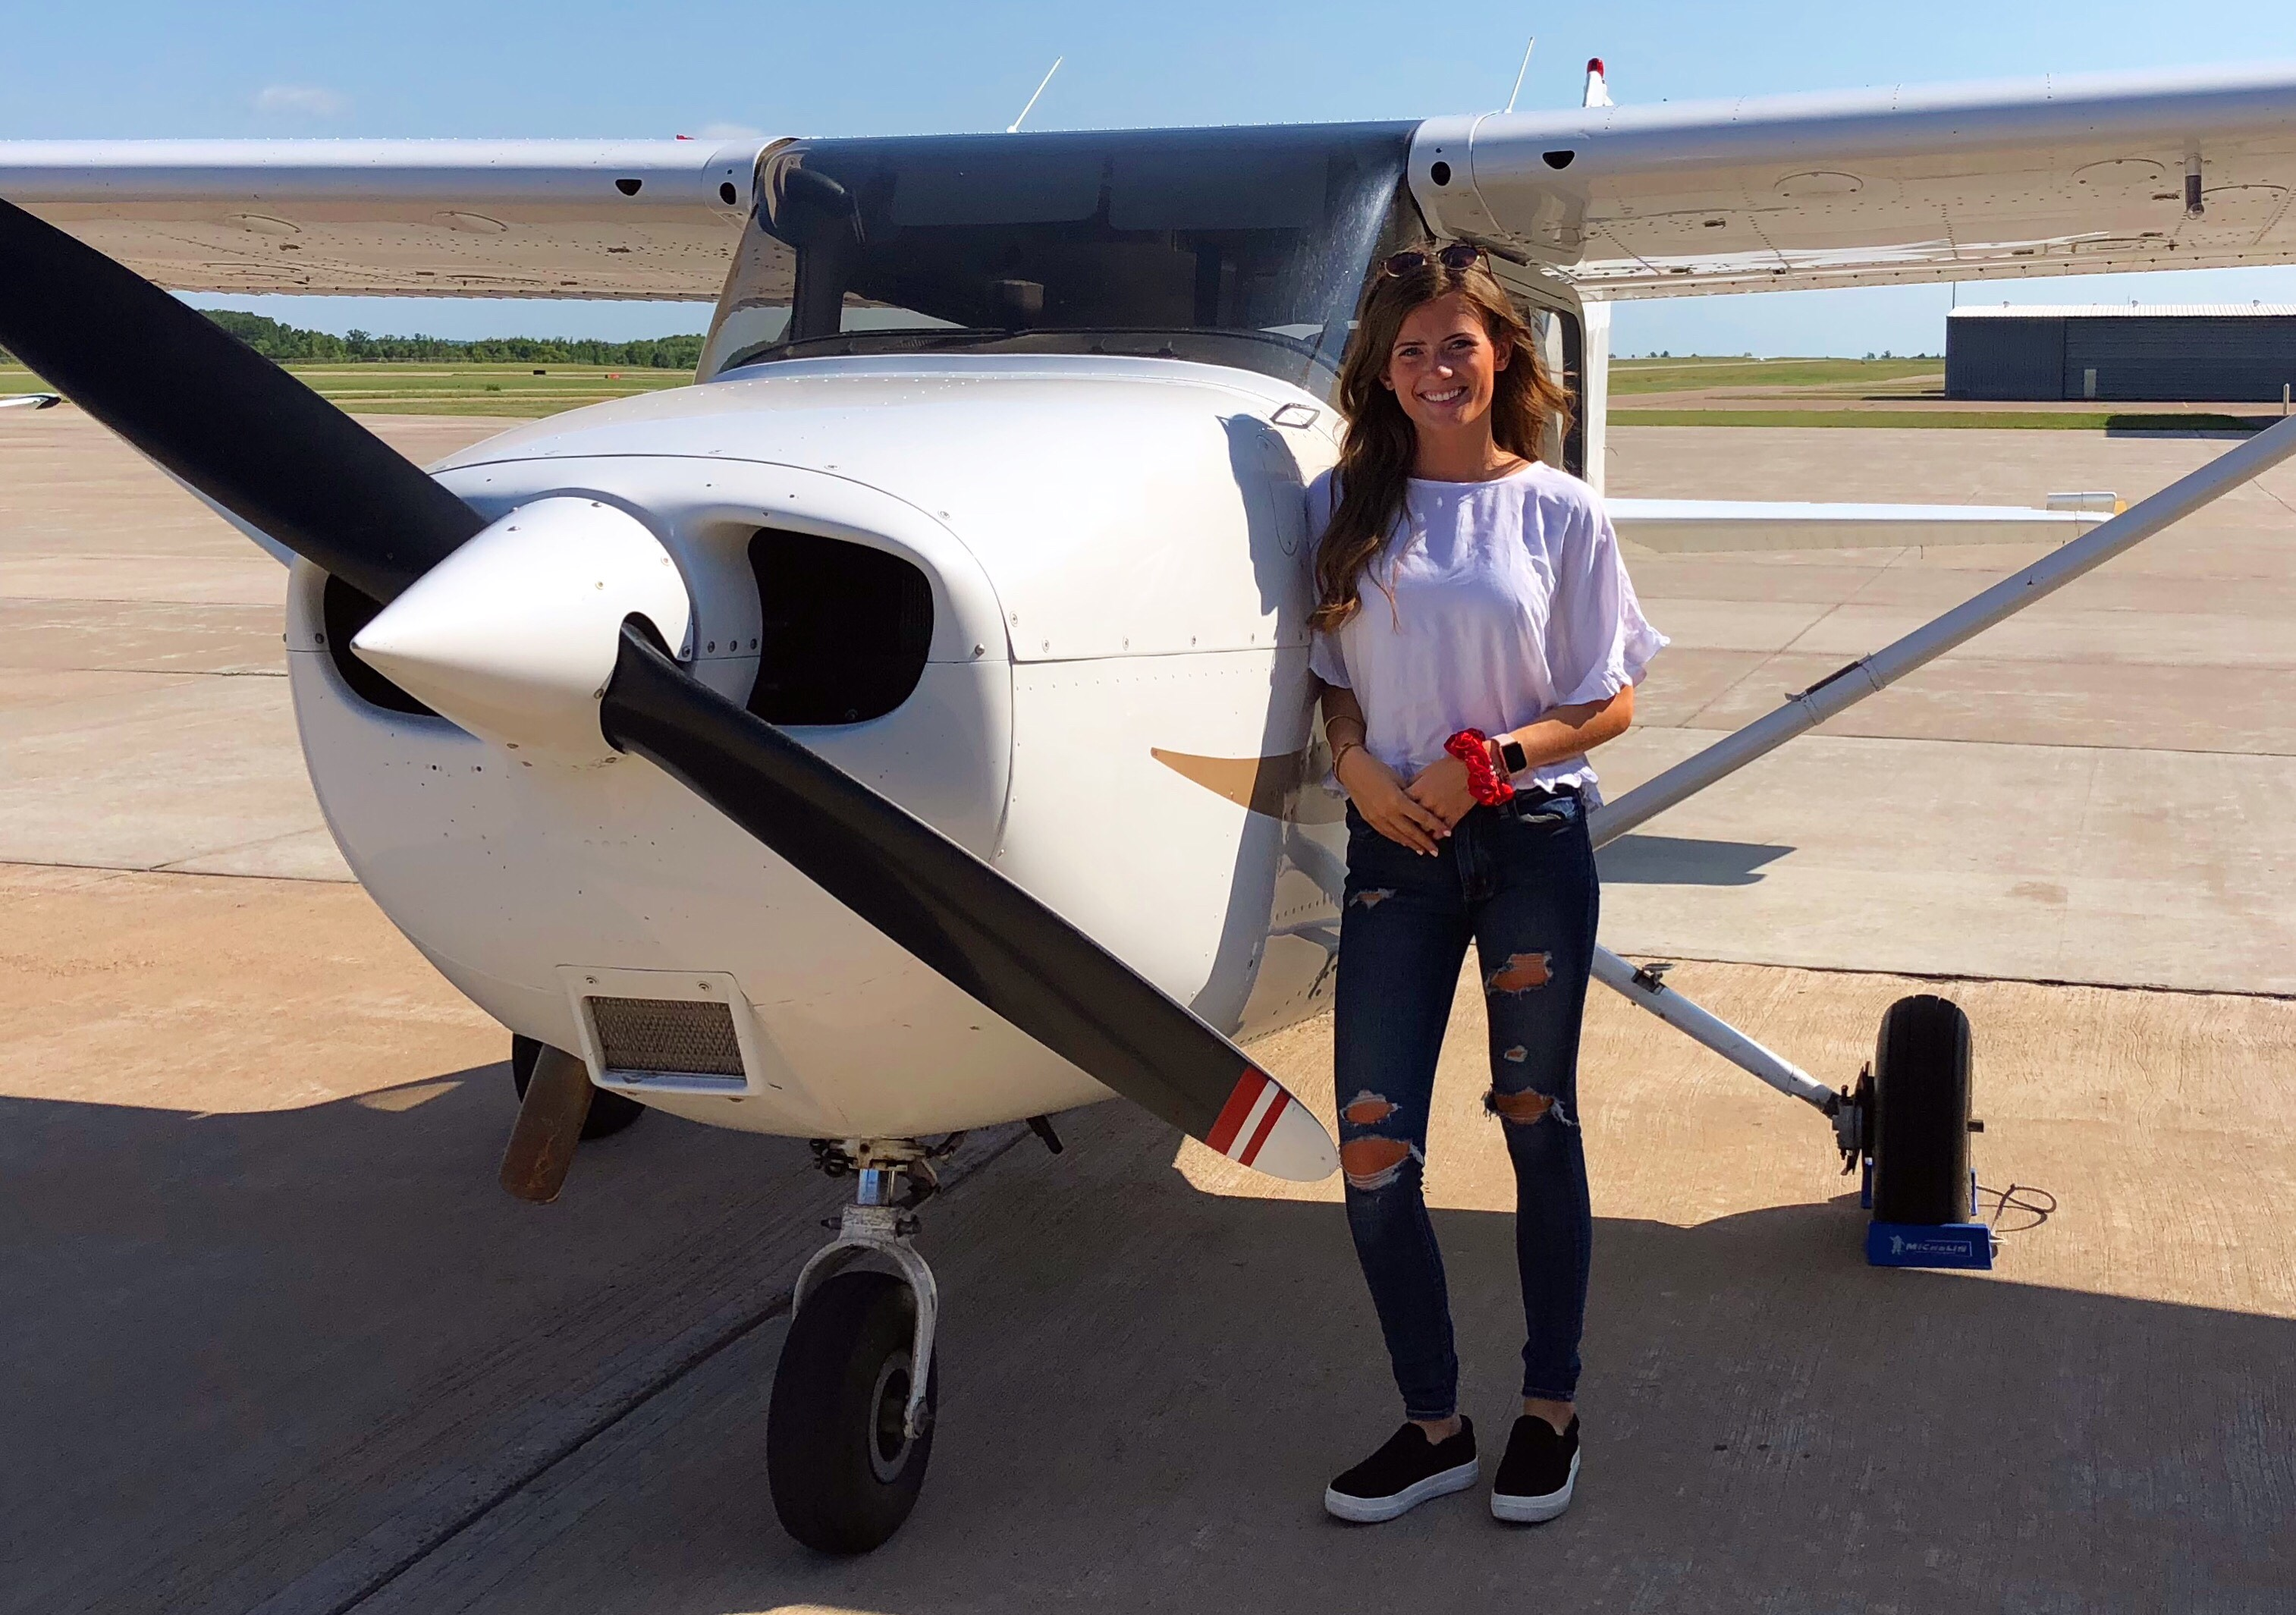 Rebecca Bell, UW-Madison, Women in Aviation Scholar 2019